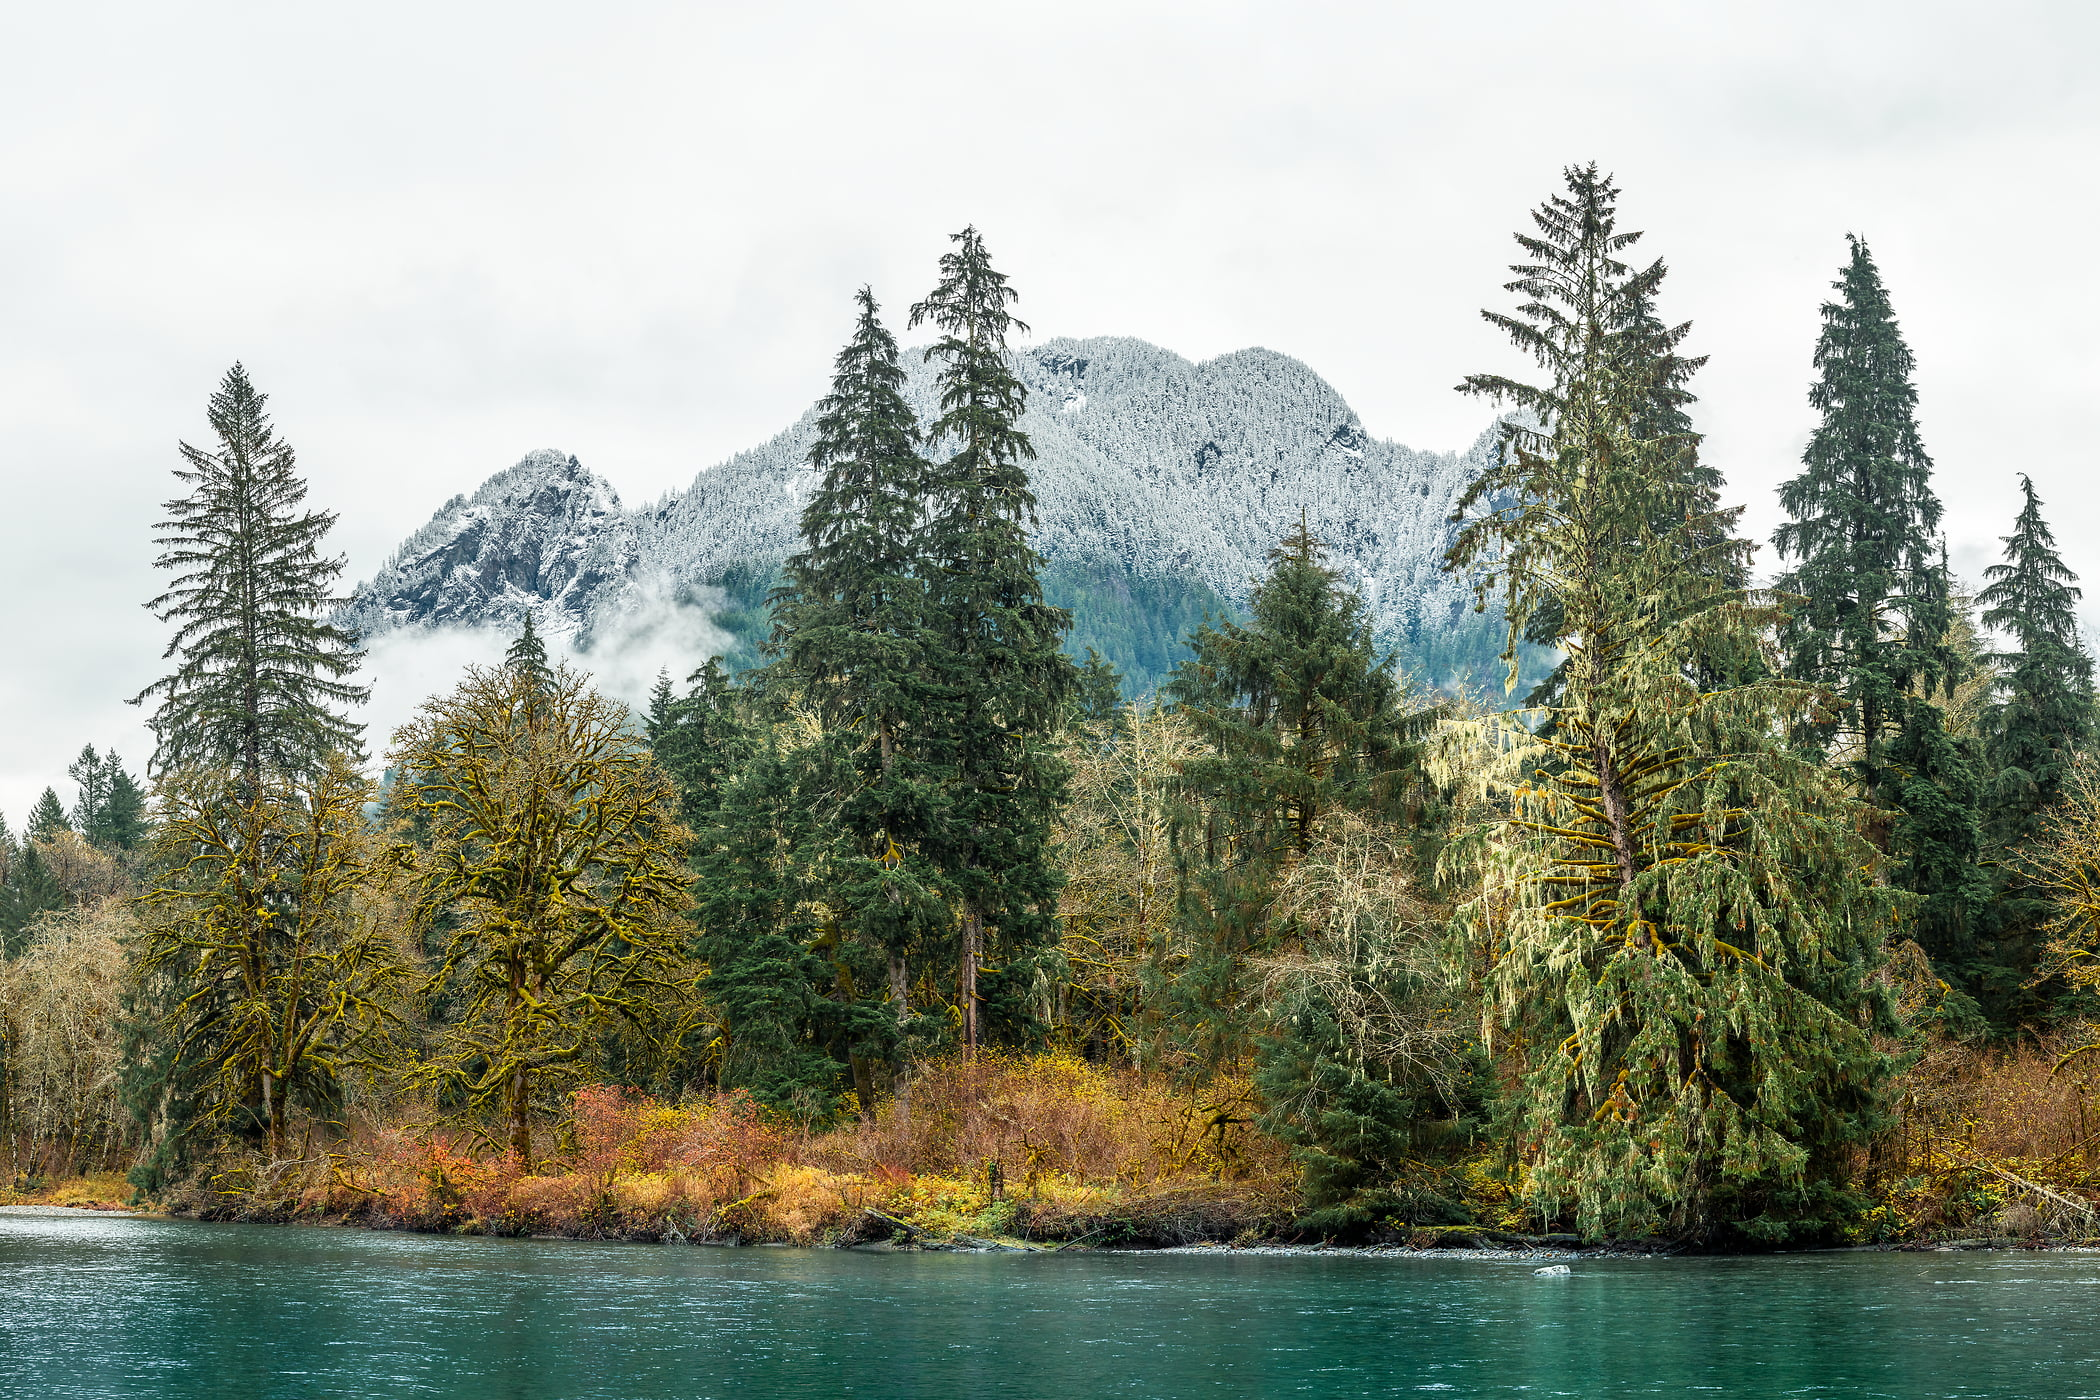 357 megapixels! A very high resolution, large-format VAST photo print of a river with evergreen trees and a mountain; nature photograph created by Scott Rinckenberger in Middle Fork of Snoqualmie River, North Bend, Washington